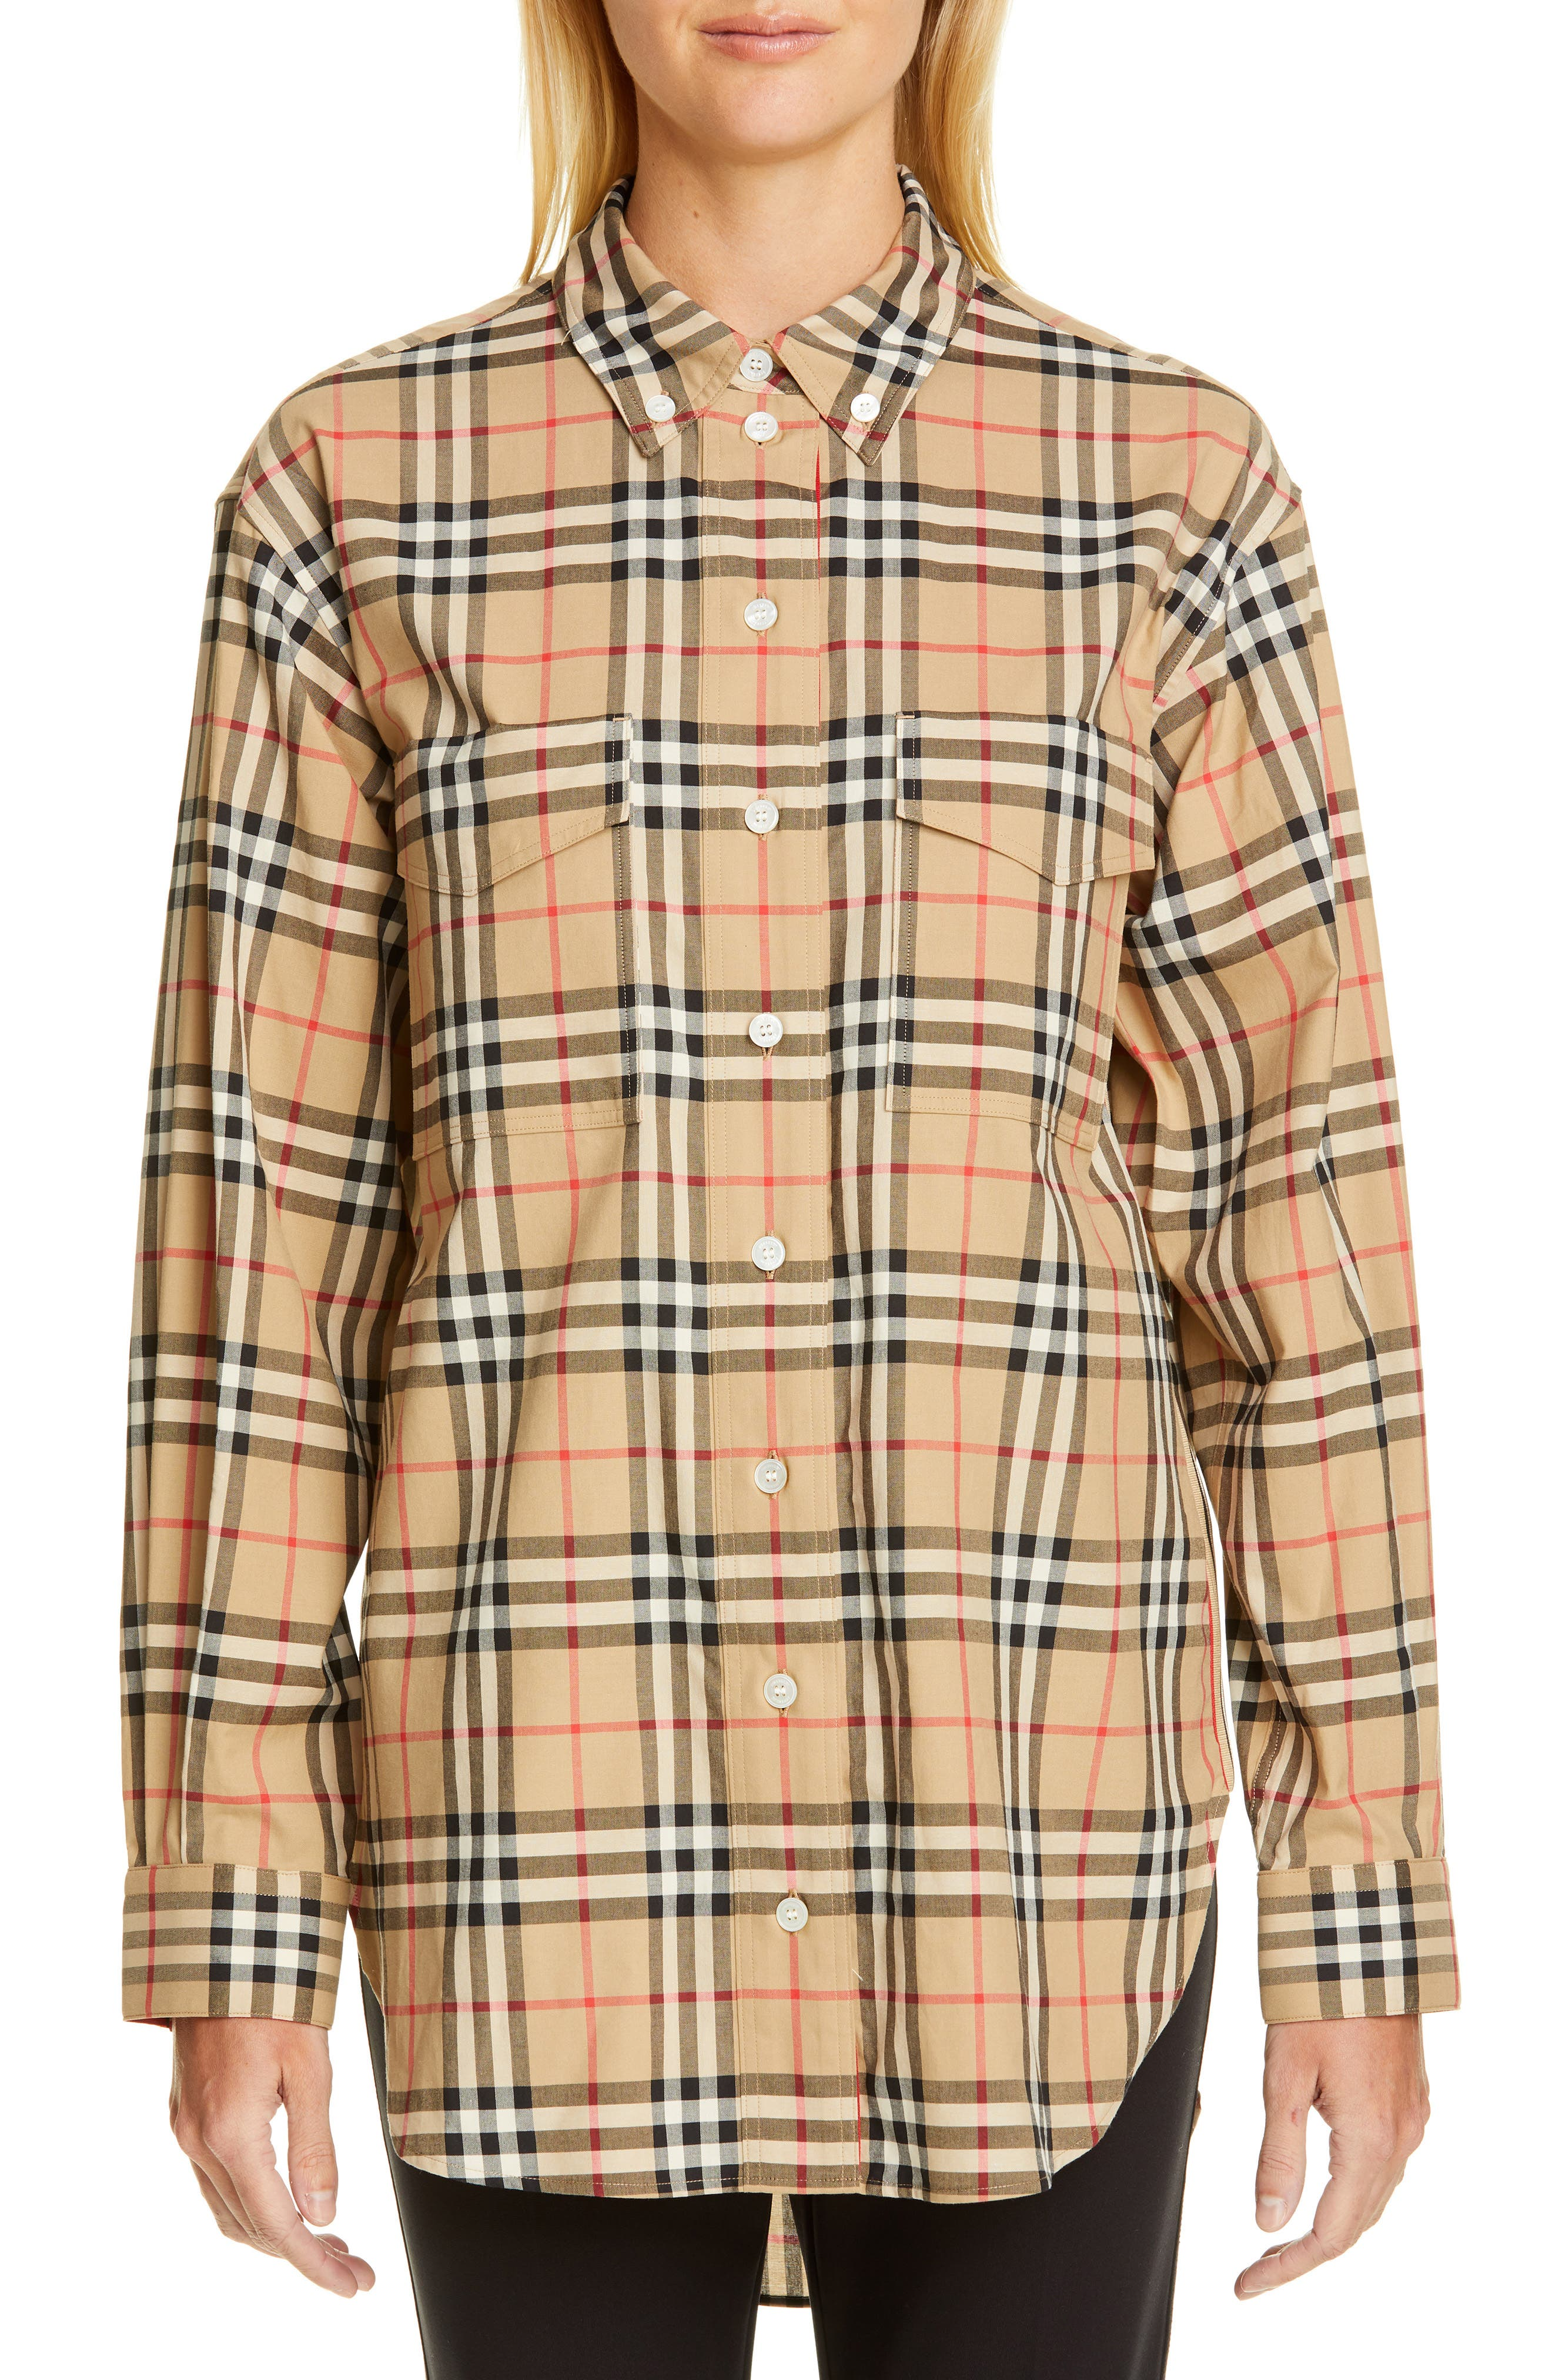 BURBERRY, Turnstone Check Shirt, Main thumbnail 1, color, ARCHIVE BEIGE IP CHK